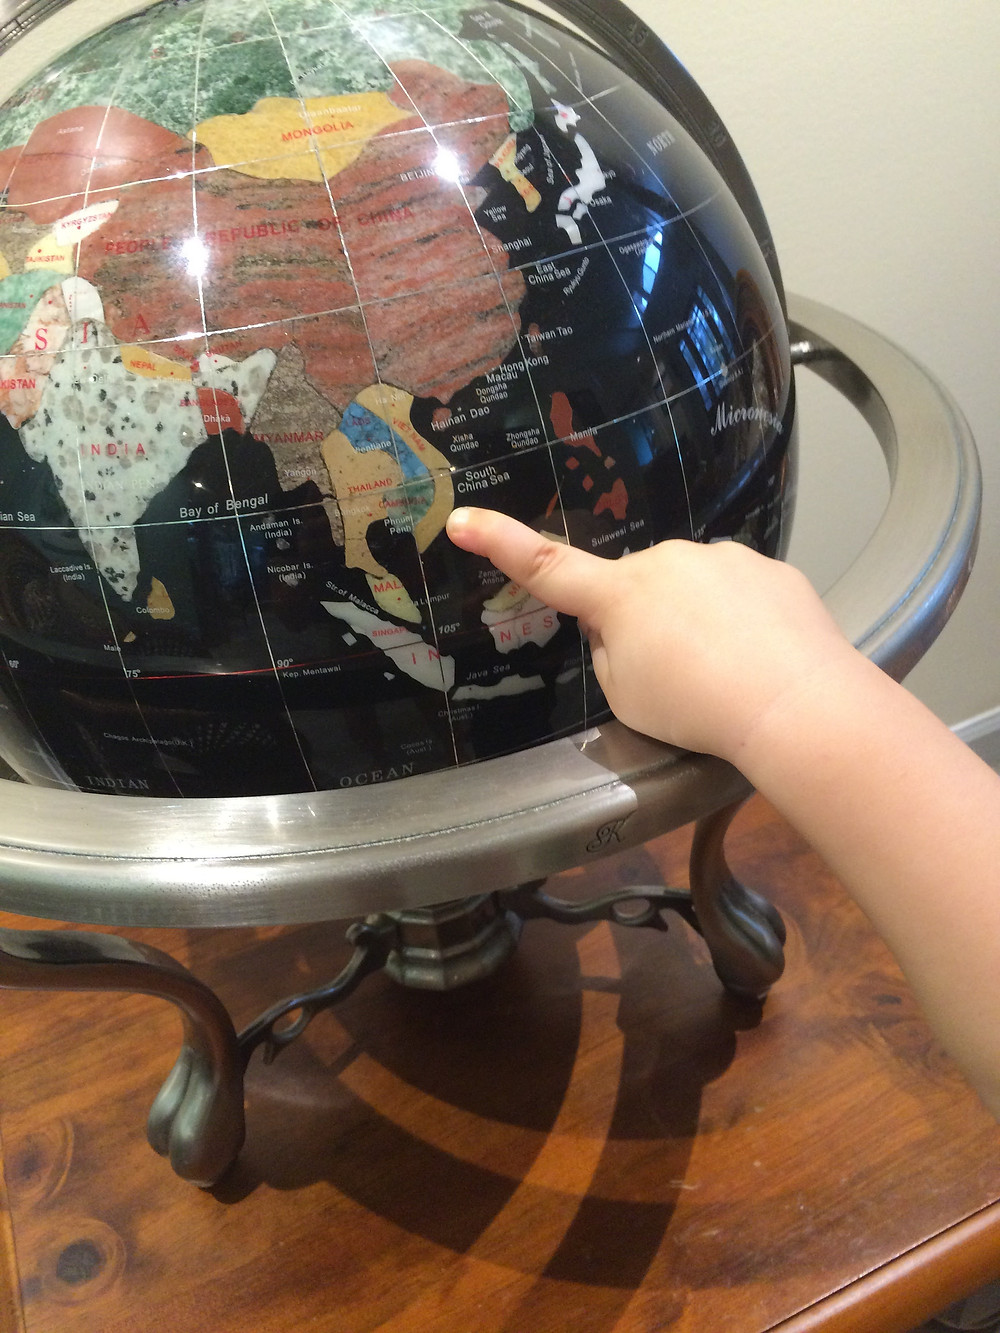 Pointing to Vietnam on the globe